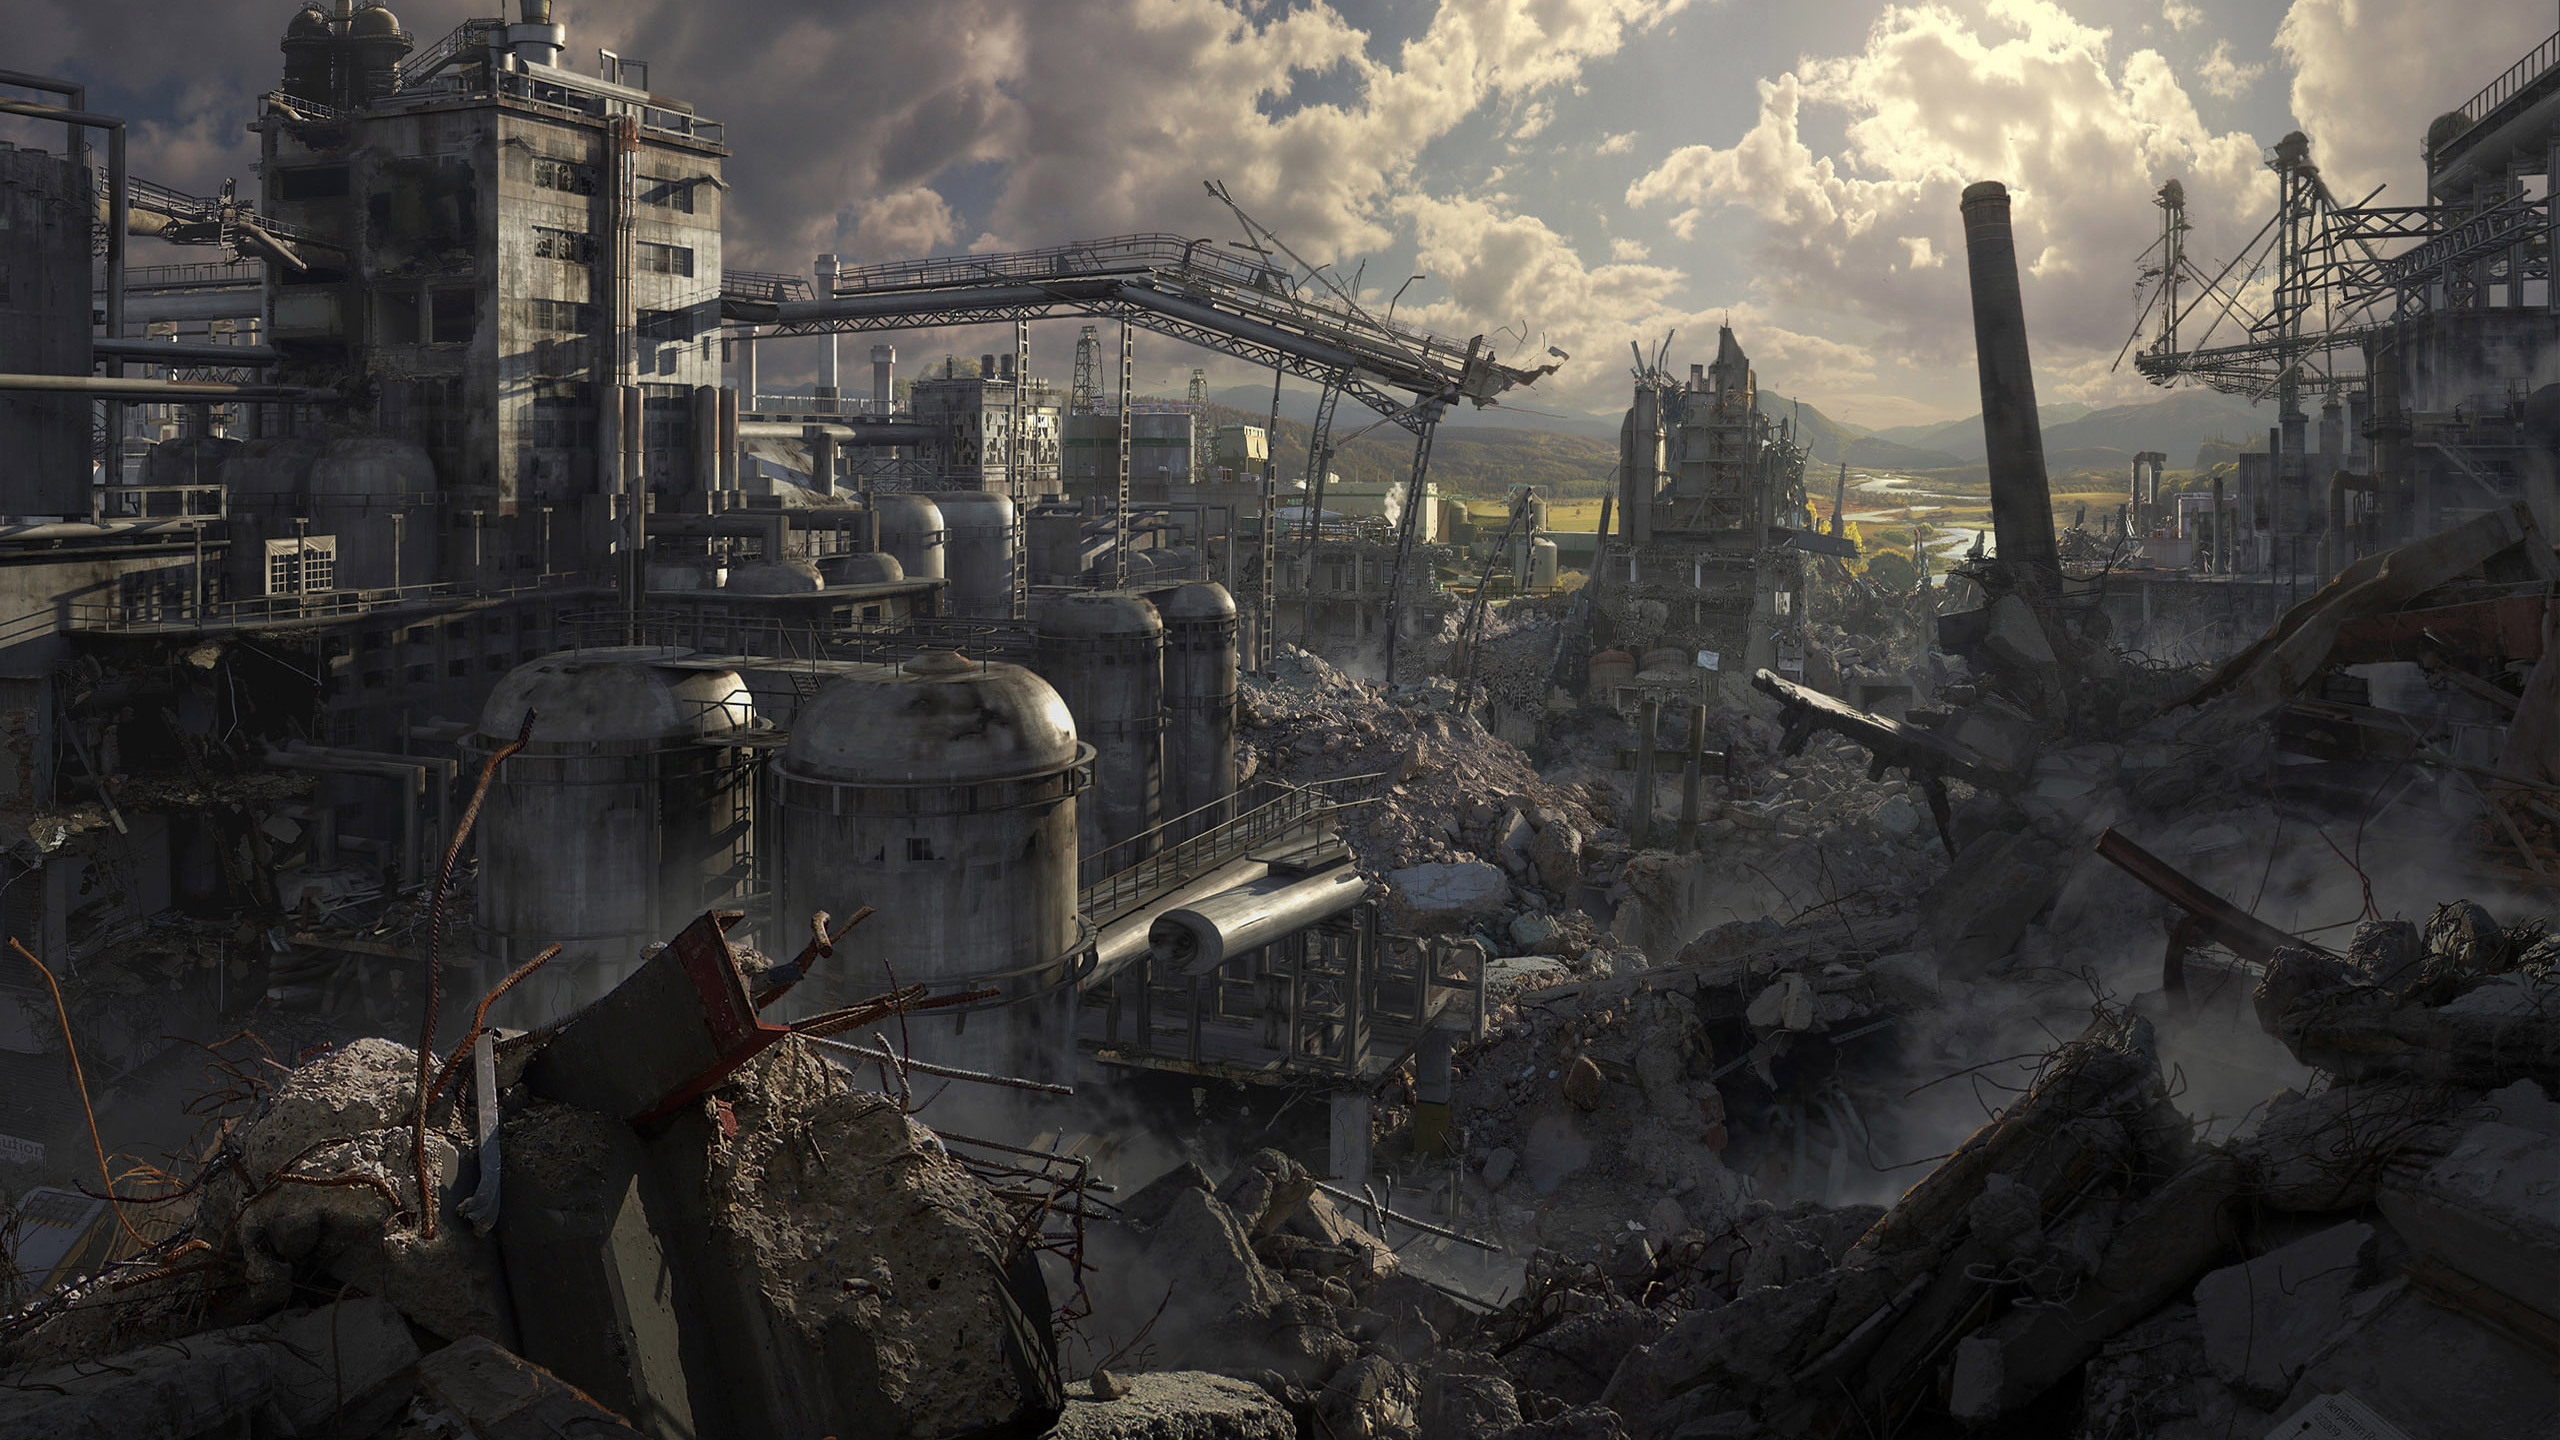 Ruins Post apocalyptic Wallpaper 2560x1440 Ruins Postapocalyptic 2560x1440